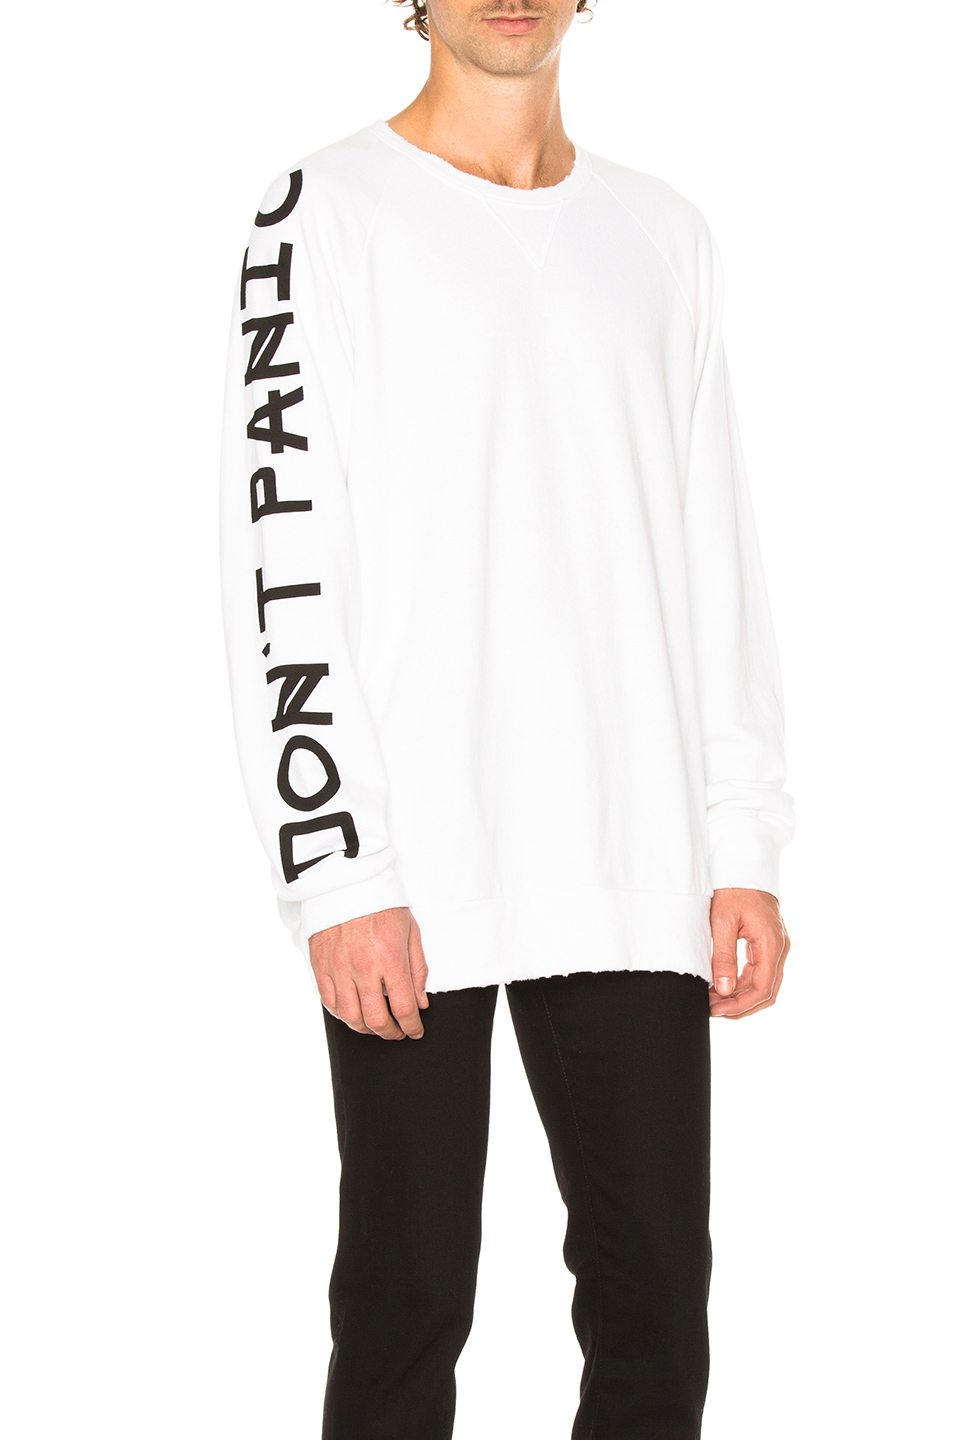 Baja East Don't Panic French Terry Sweatshirt in White